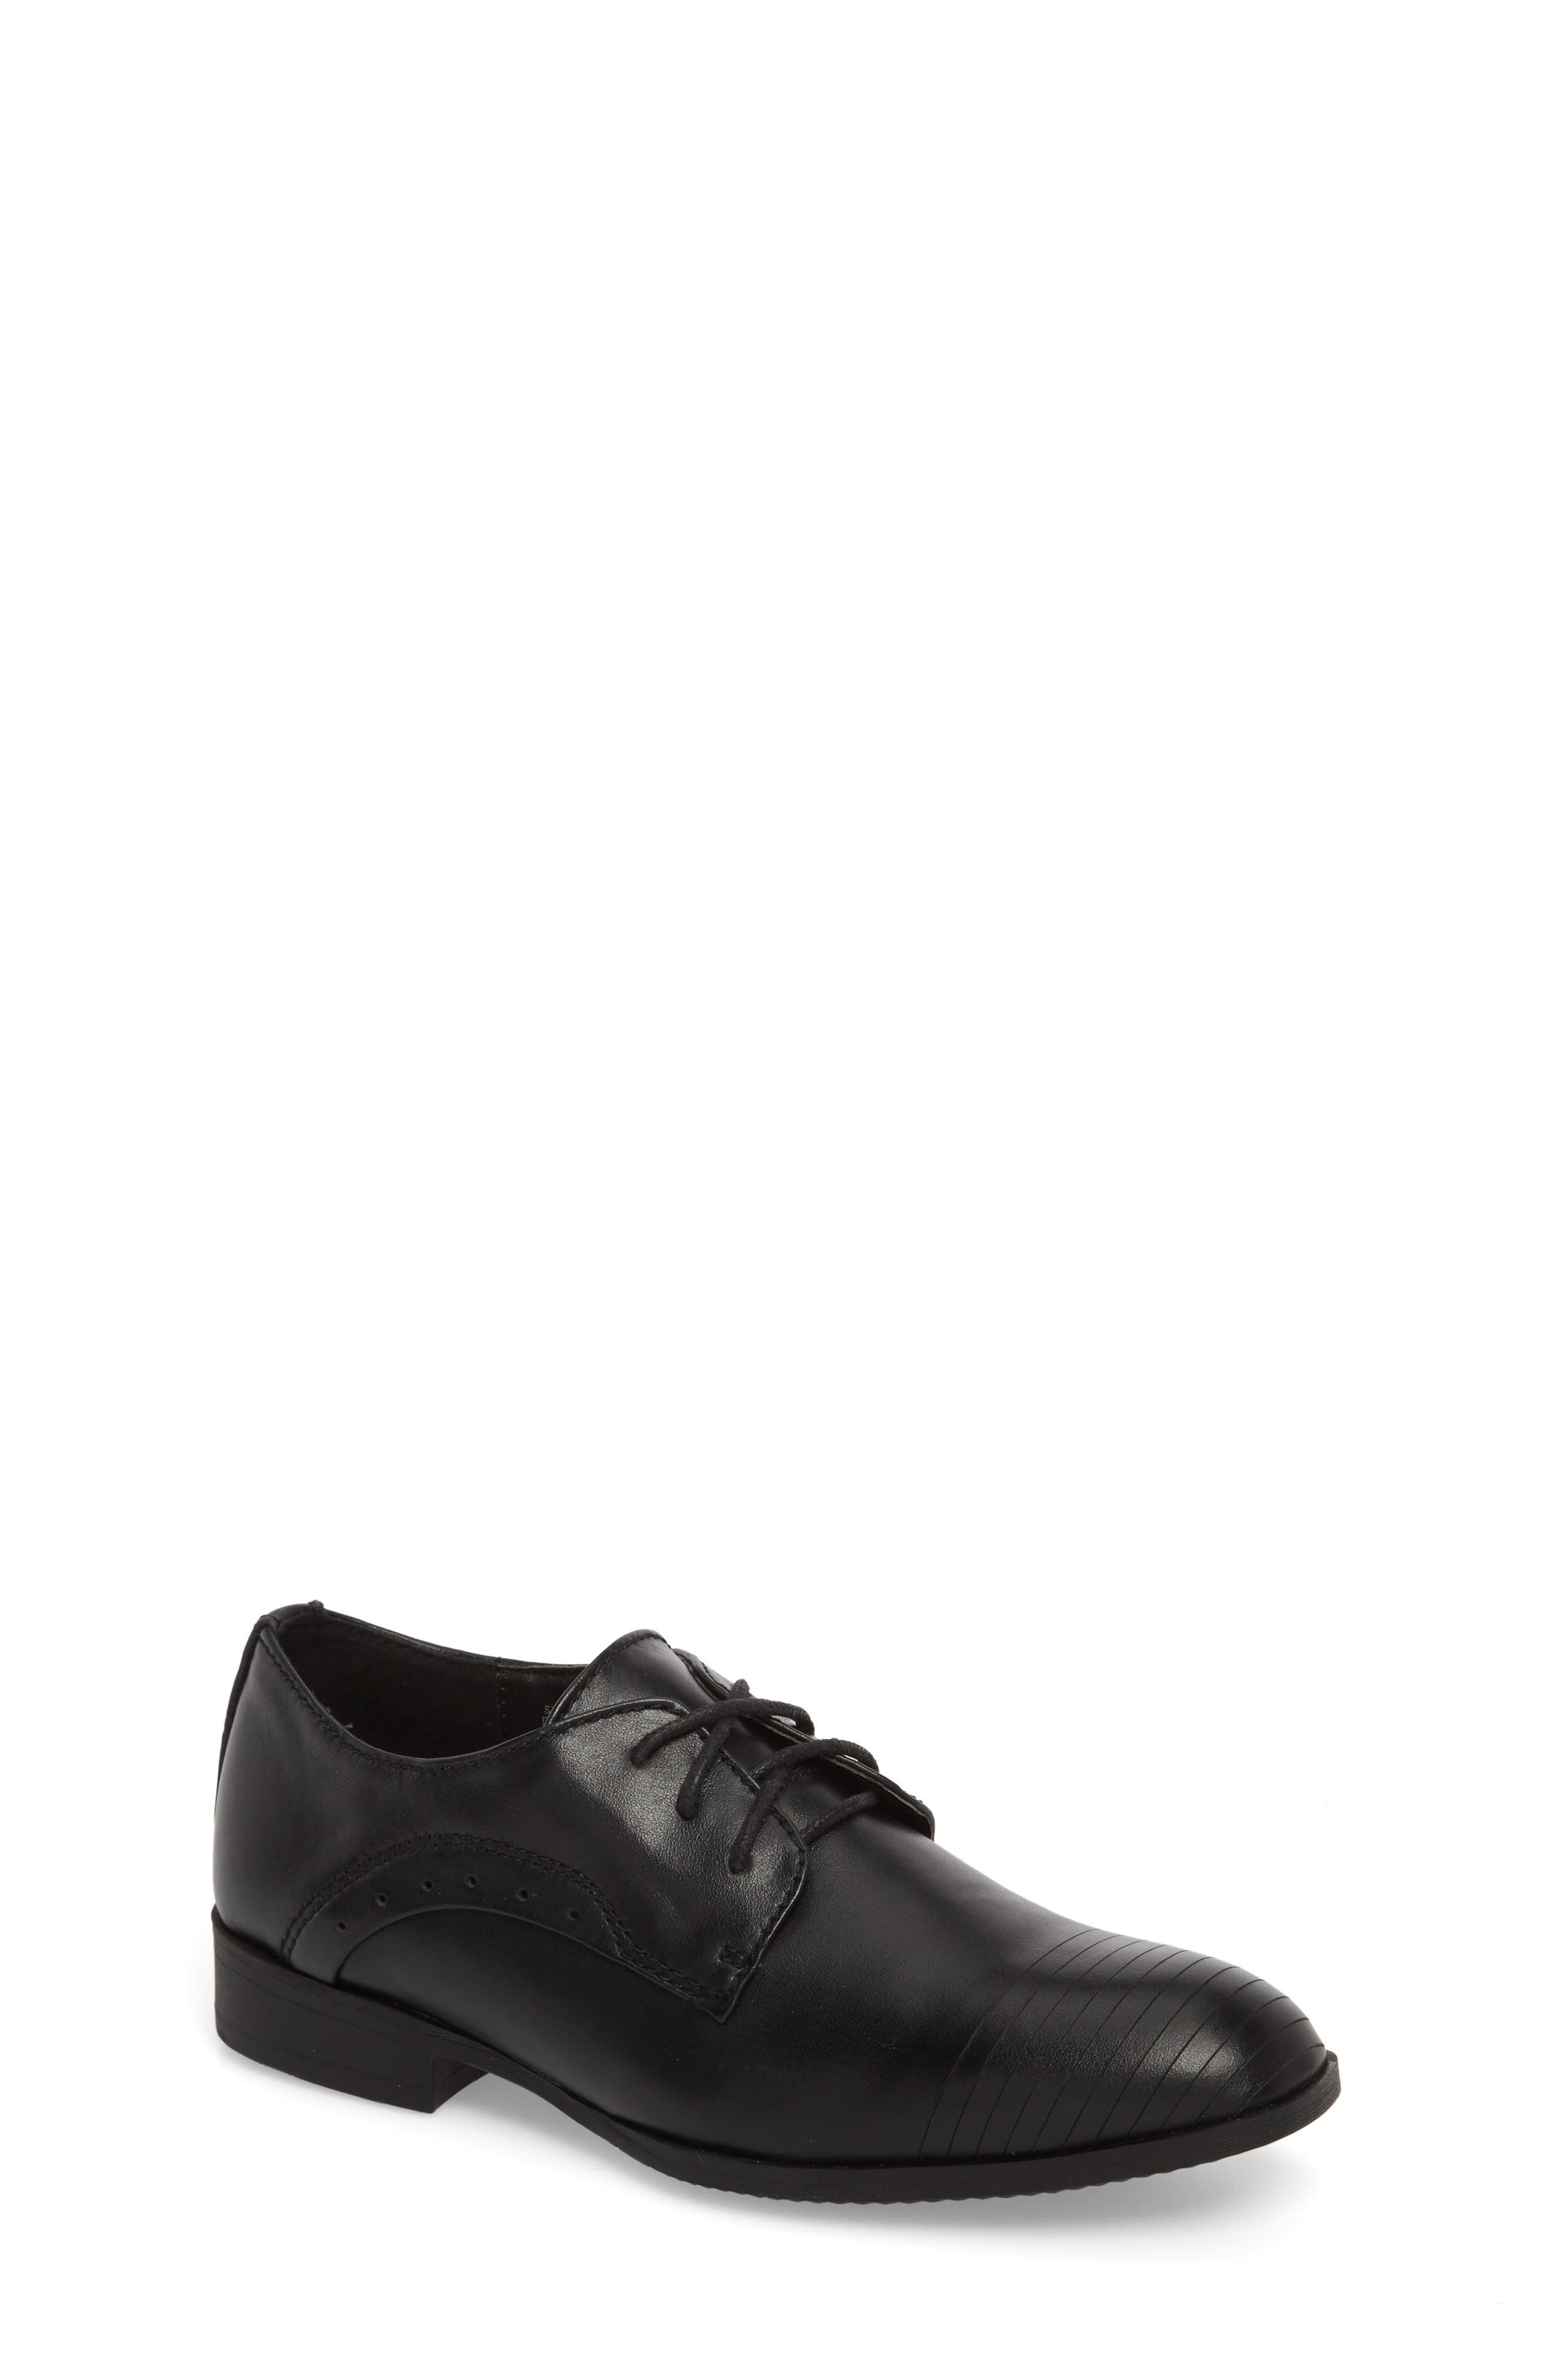 REACTION KENNETH COLE, Straight Line Derby, Main thumbnail 1, color, BLACK